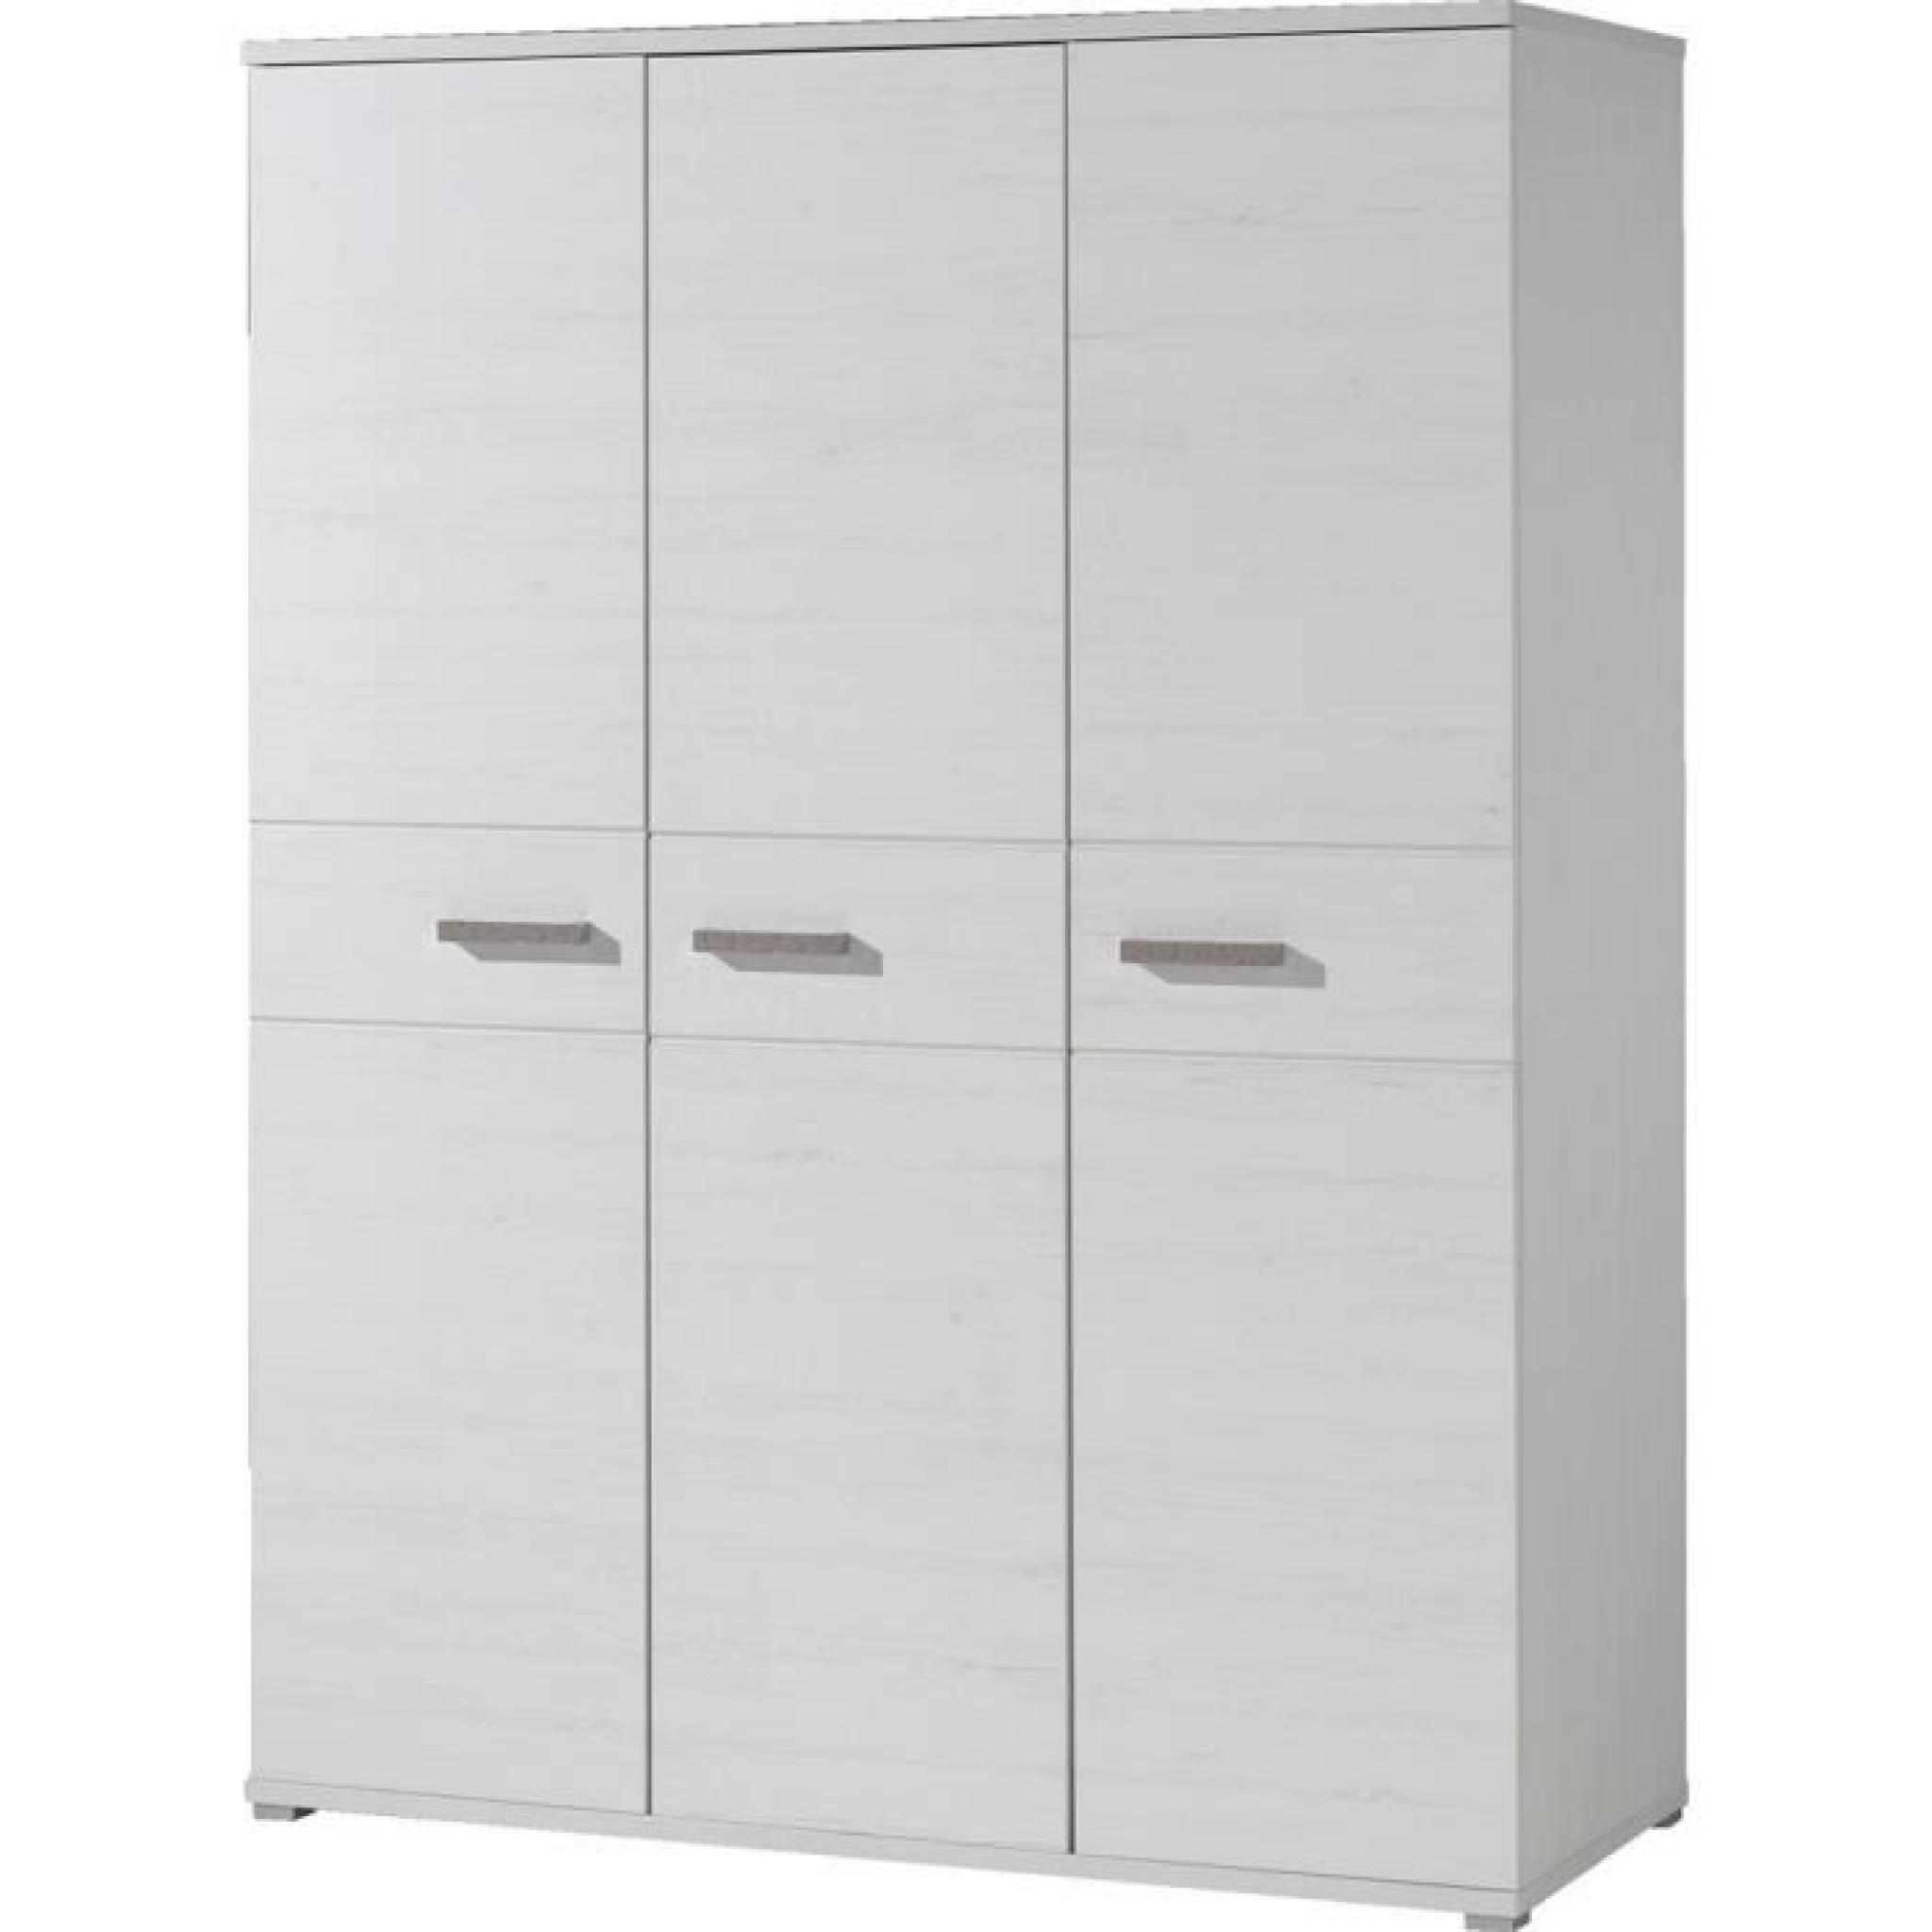 armoire 3 portes sofie blanche achat vente armoire de. Black Bedroom Furniture Sets. Home Design Ideas